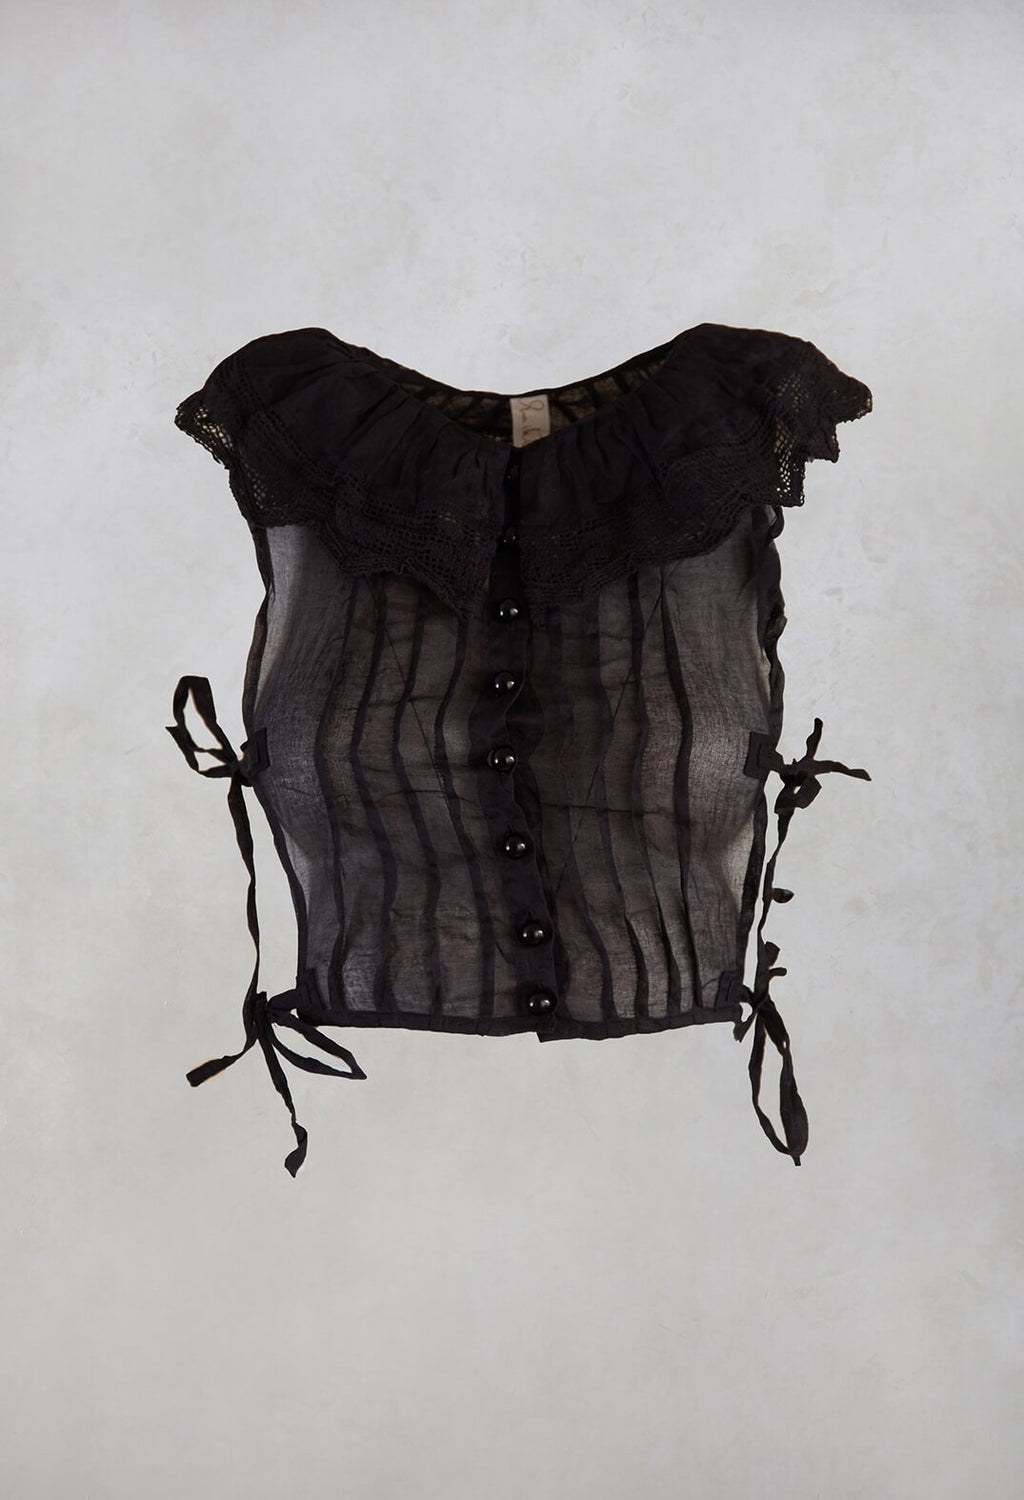 Organdie Collar in Vintage Black